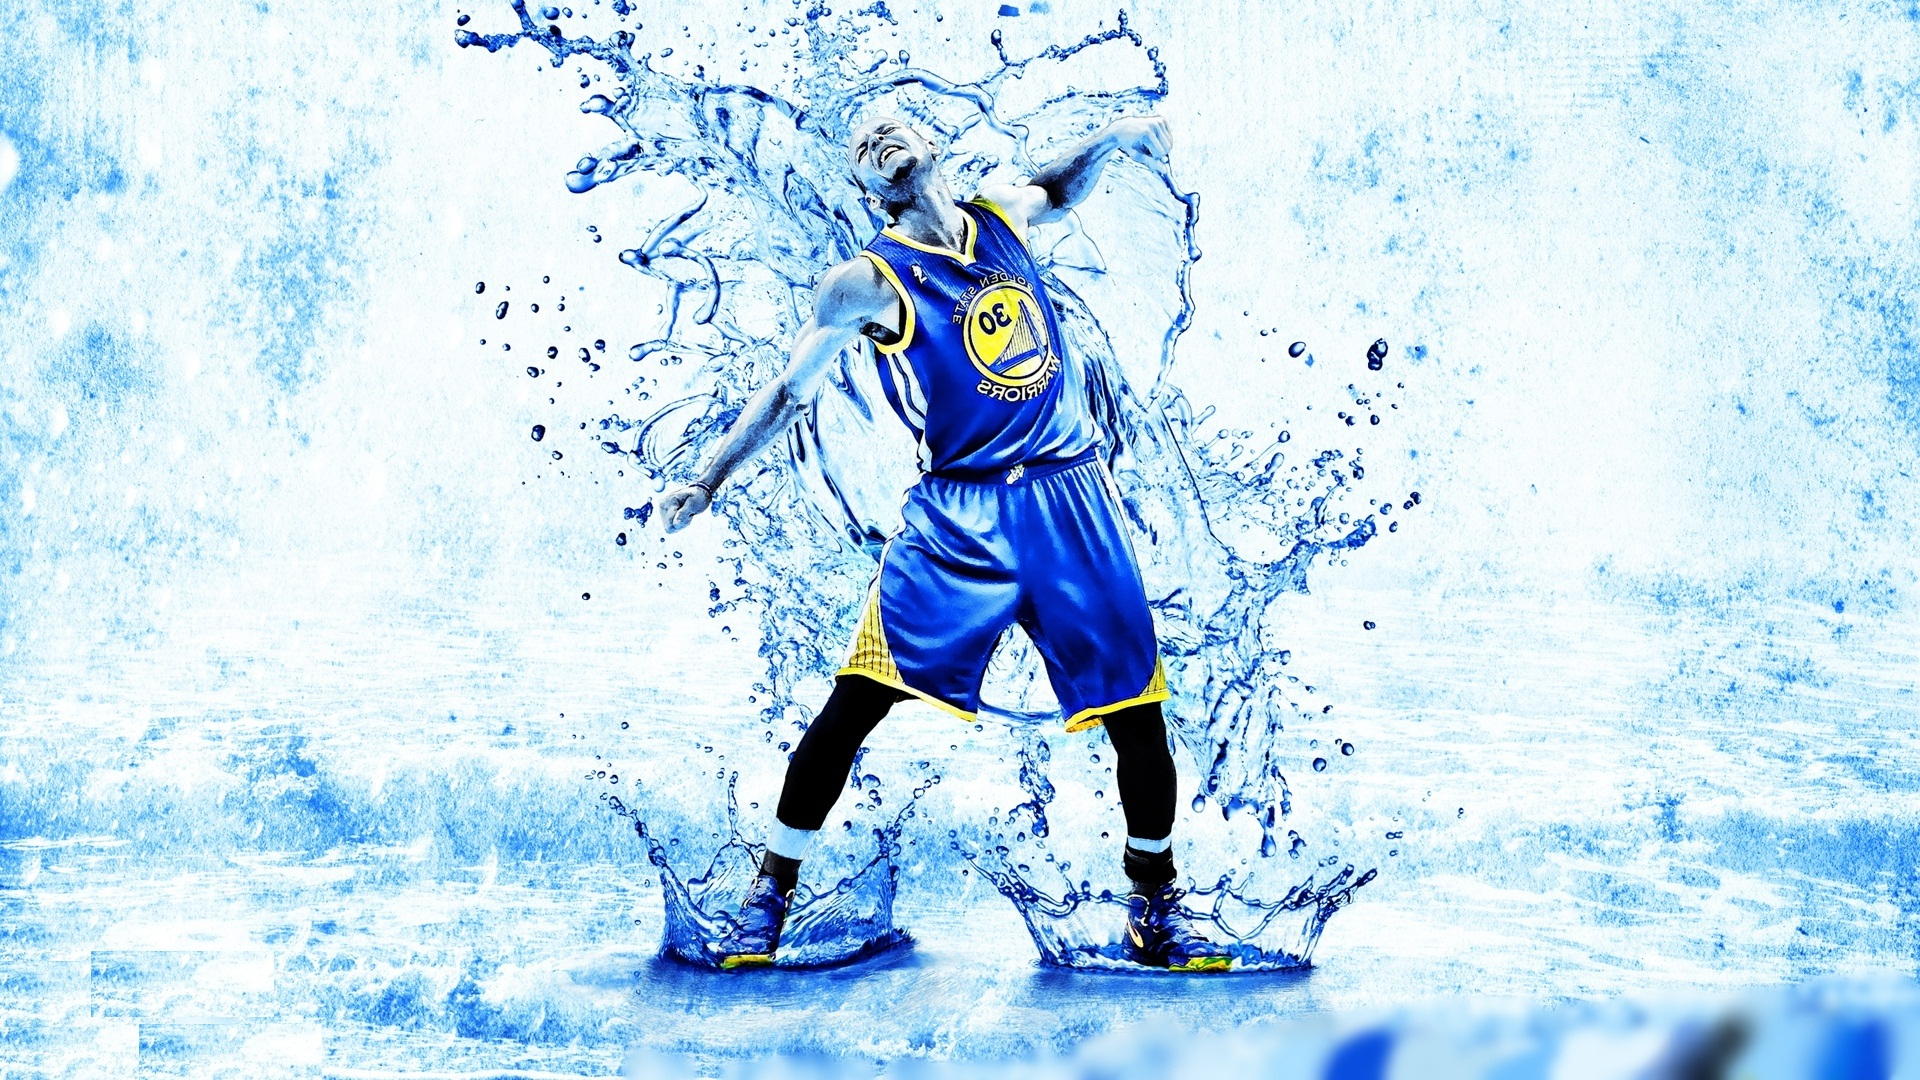 Stephen Curry Wallpaper 2015 Image Gallery and More 1920x1080